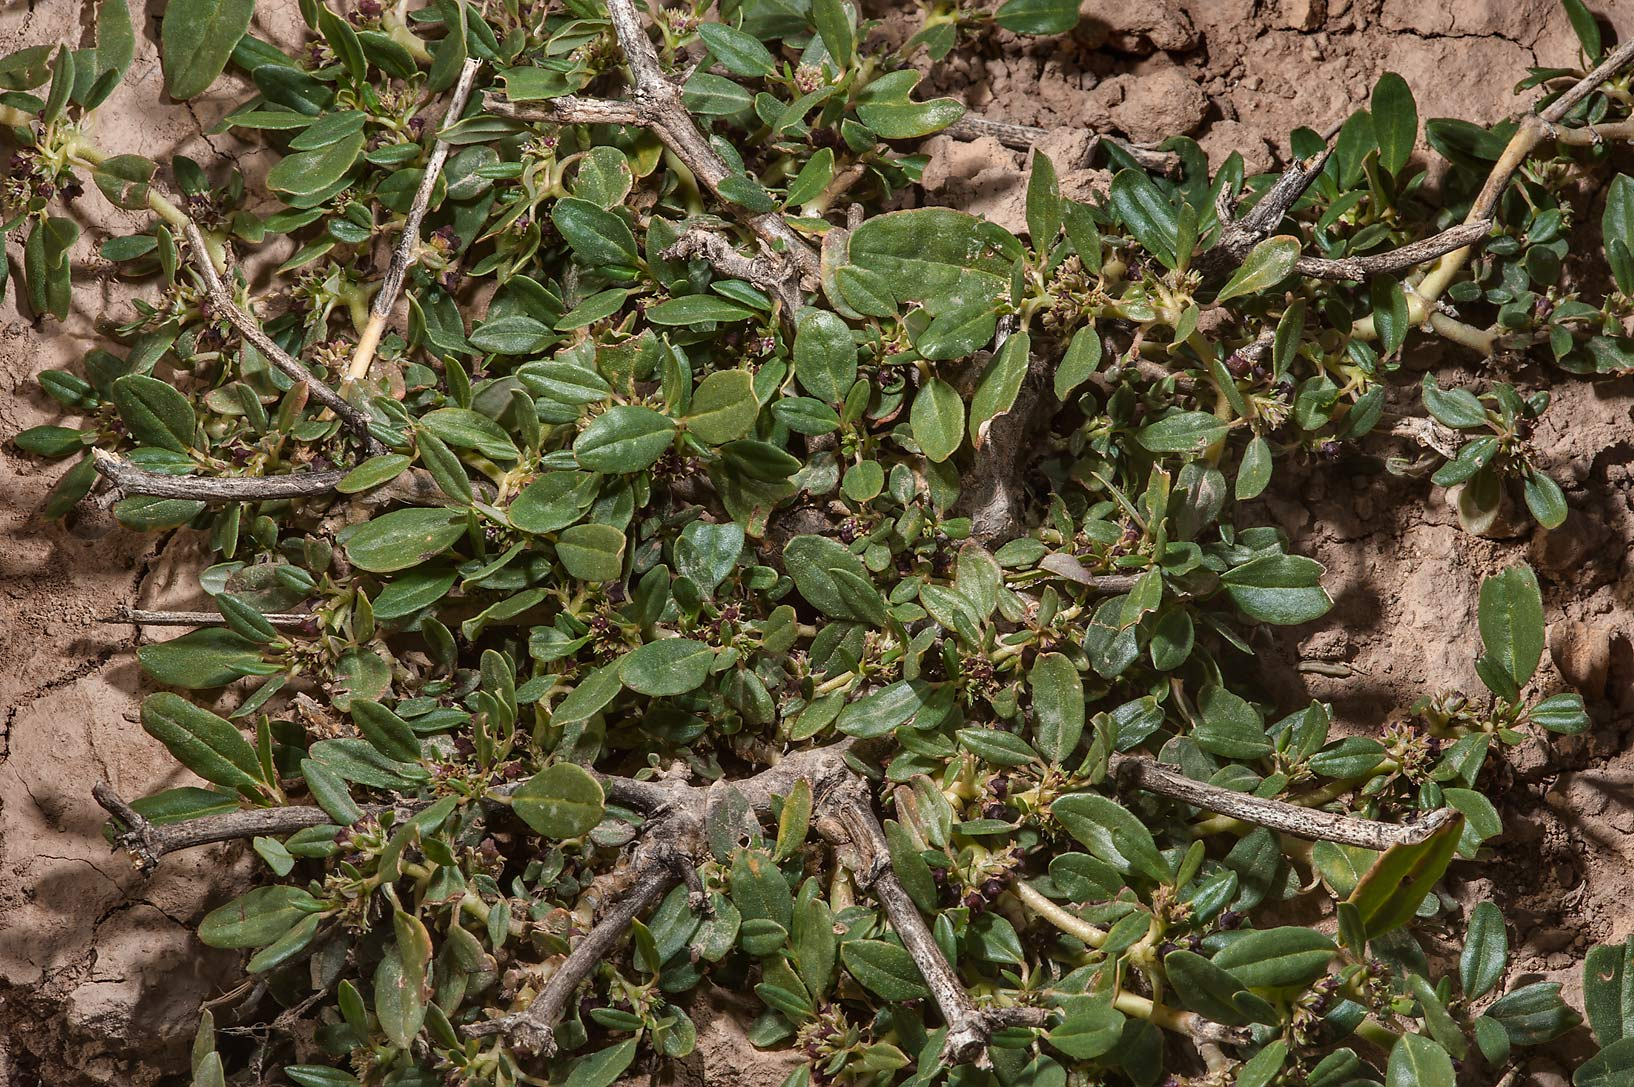 Prostrate plant of Zaleya pentandra in a silty...Al Numan) near Zubara. Northern Qatar